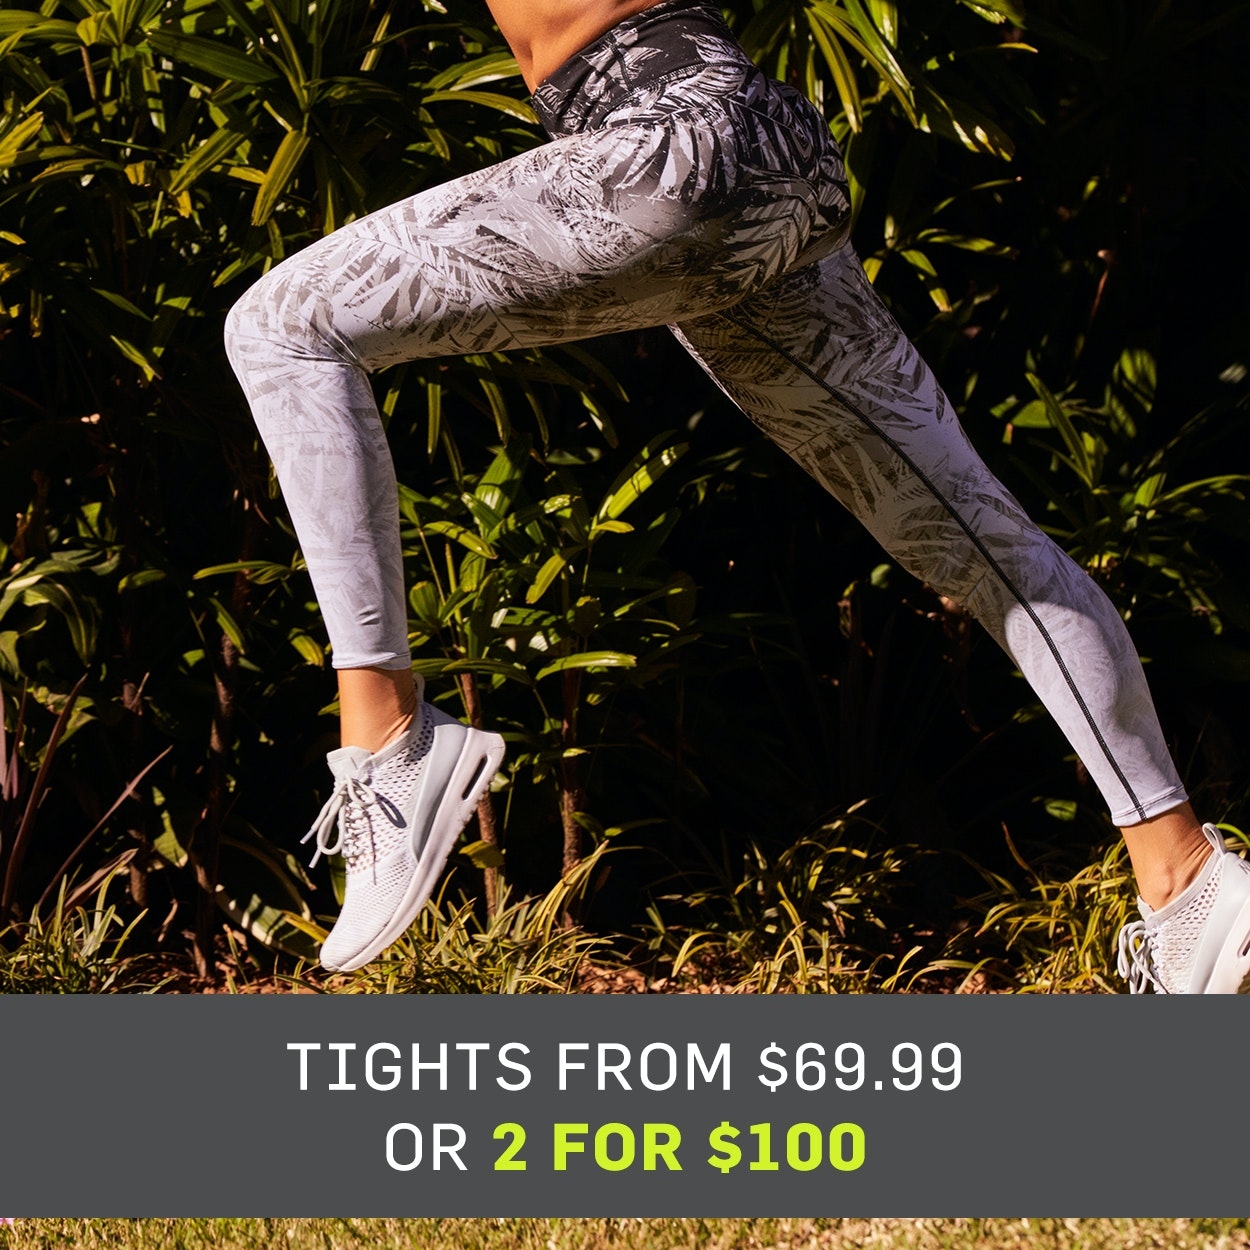 Shop Womens Tights from $69.99 or 2 for $100